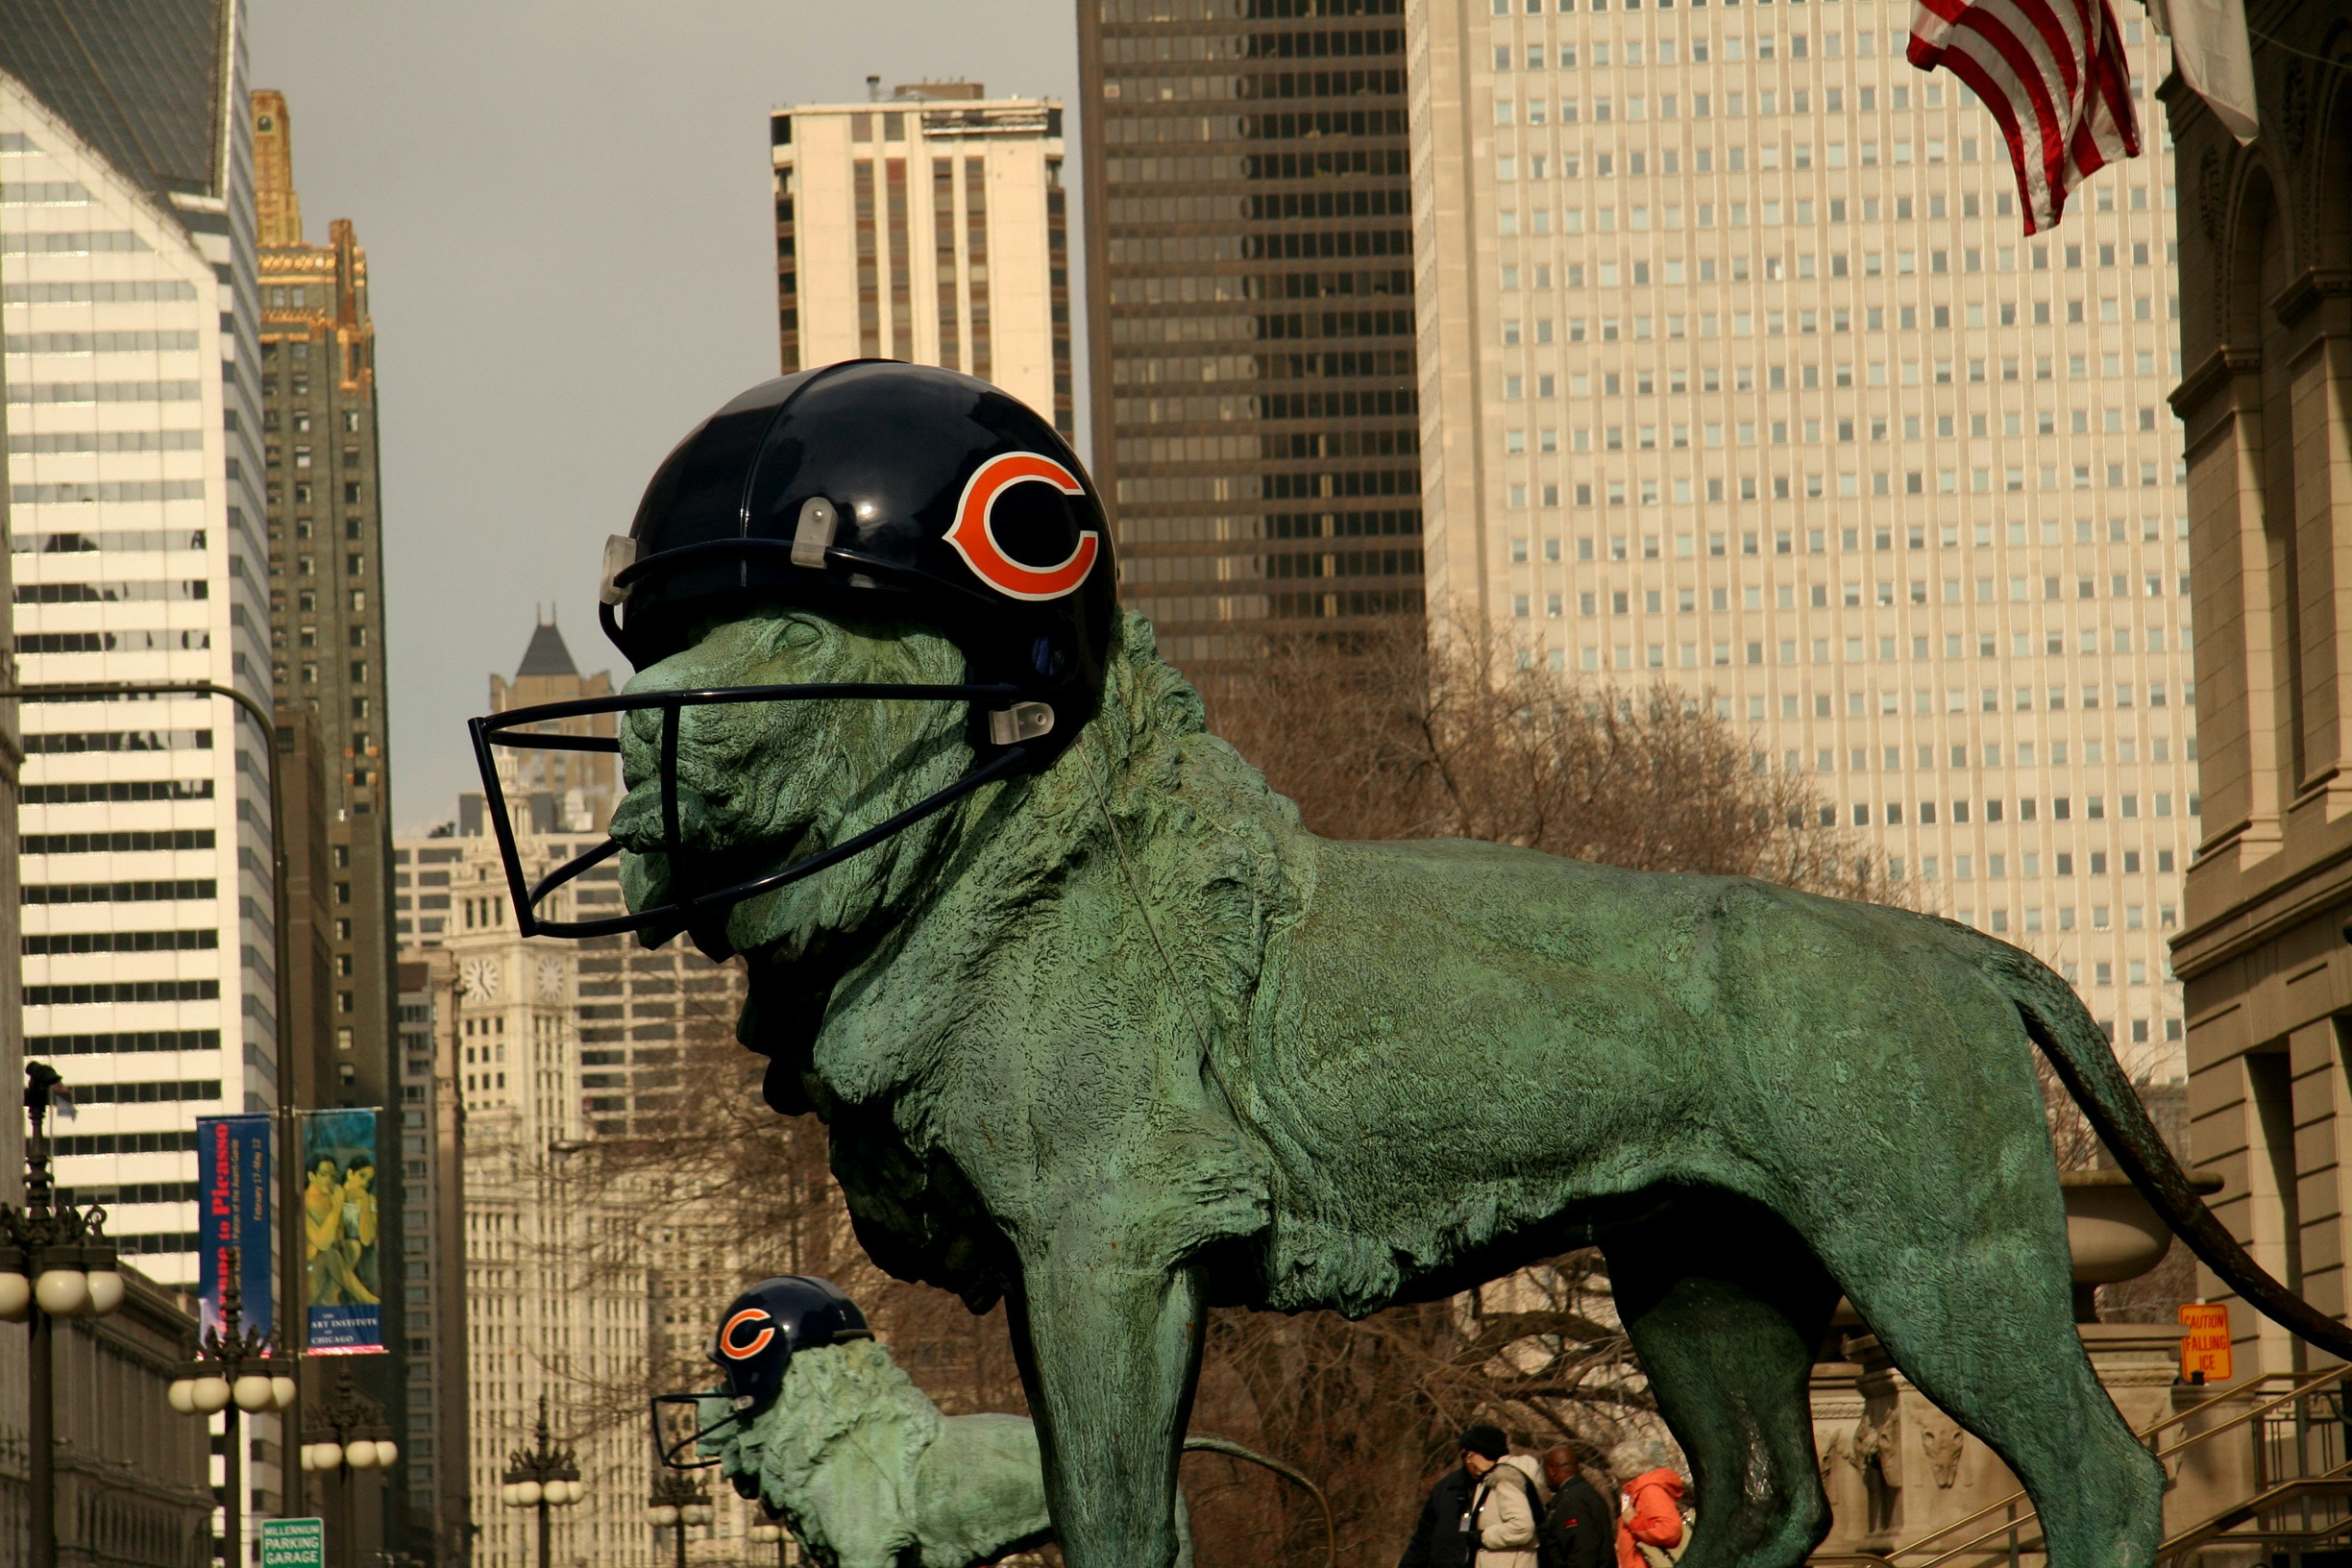 2007 photo of Lions wearing Chicago Bears Helmets